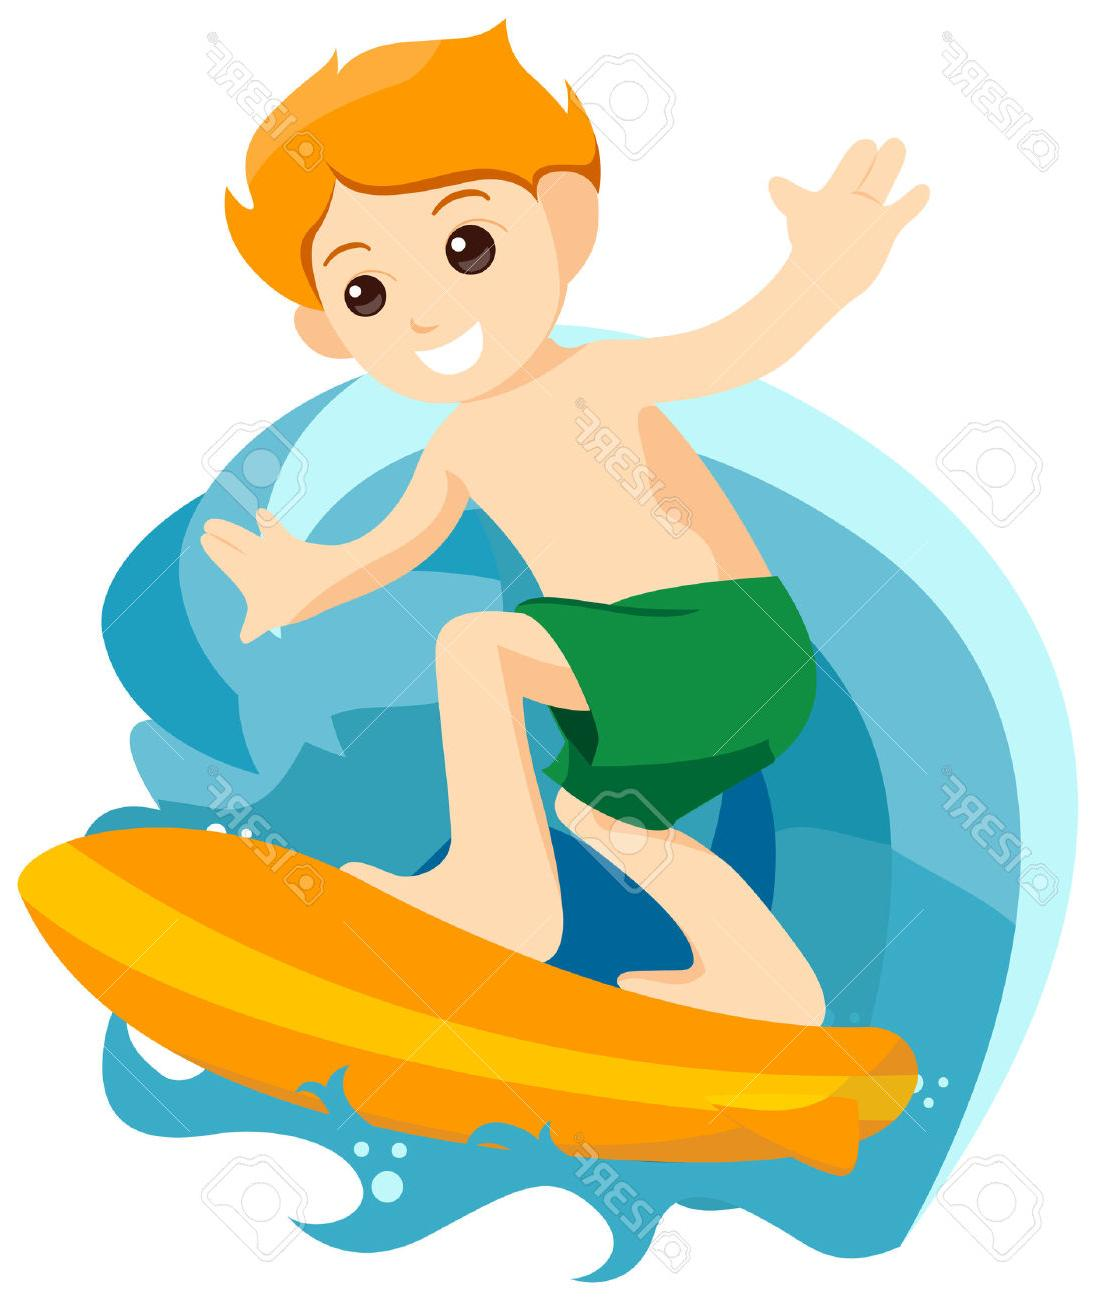 1097x1300 Best Hd Kid Surfing Clipart Pictures Free Vector Art, Images